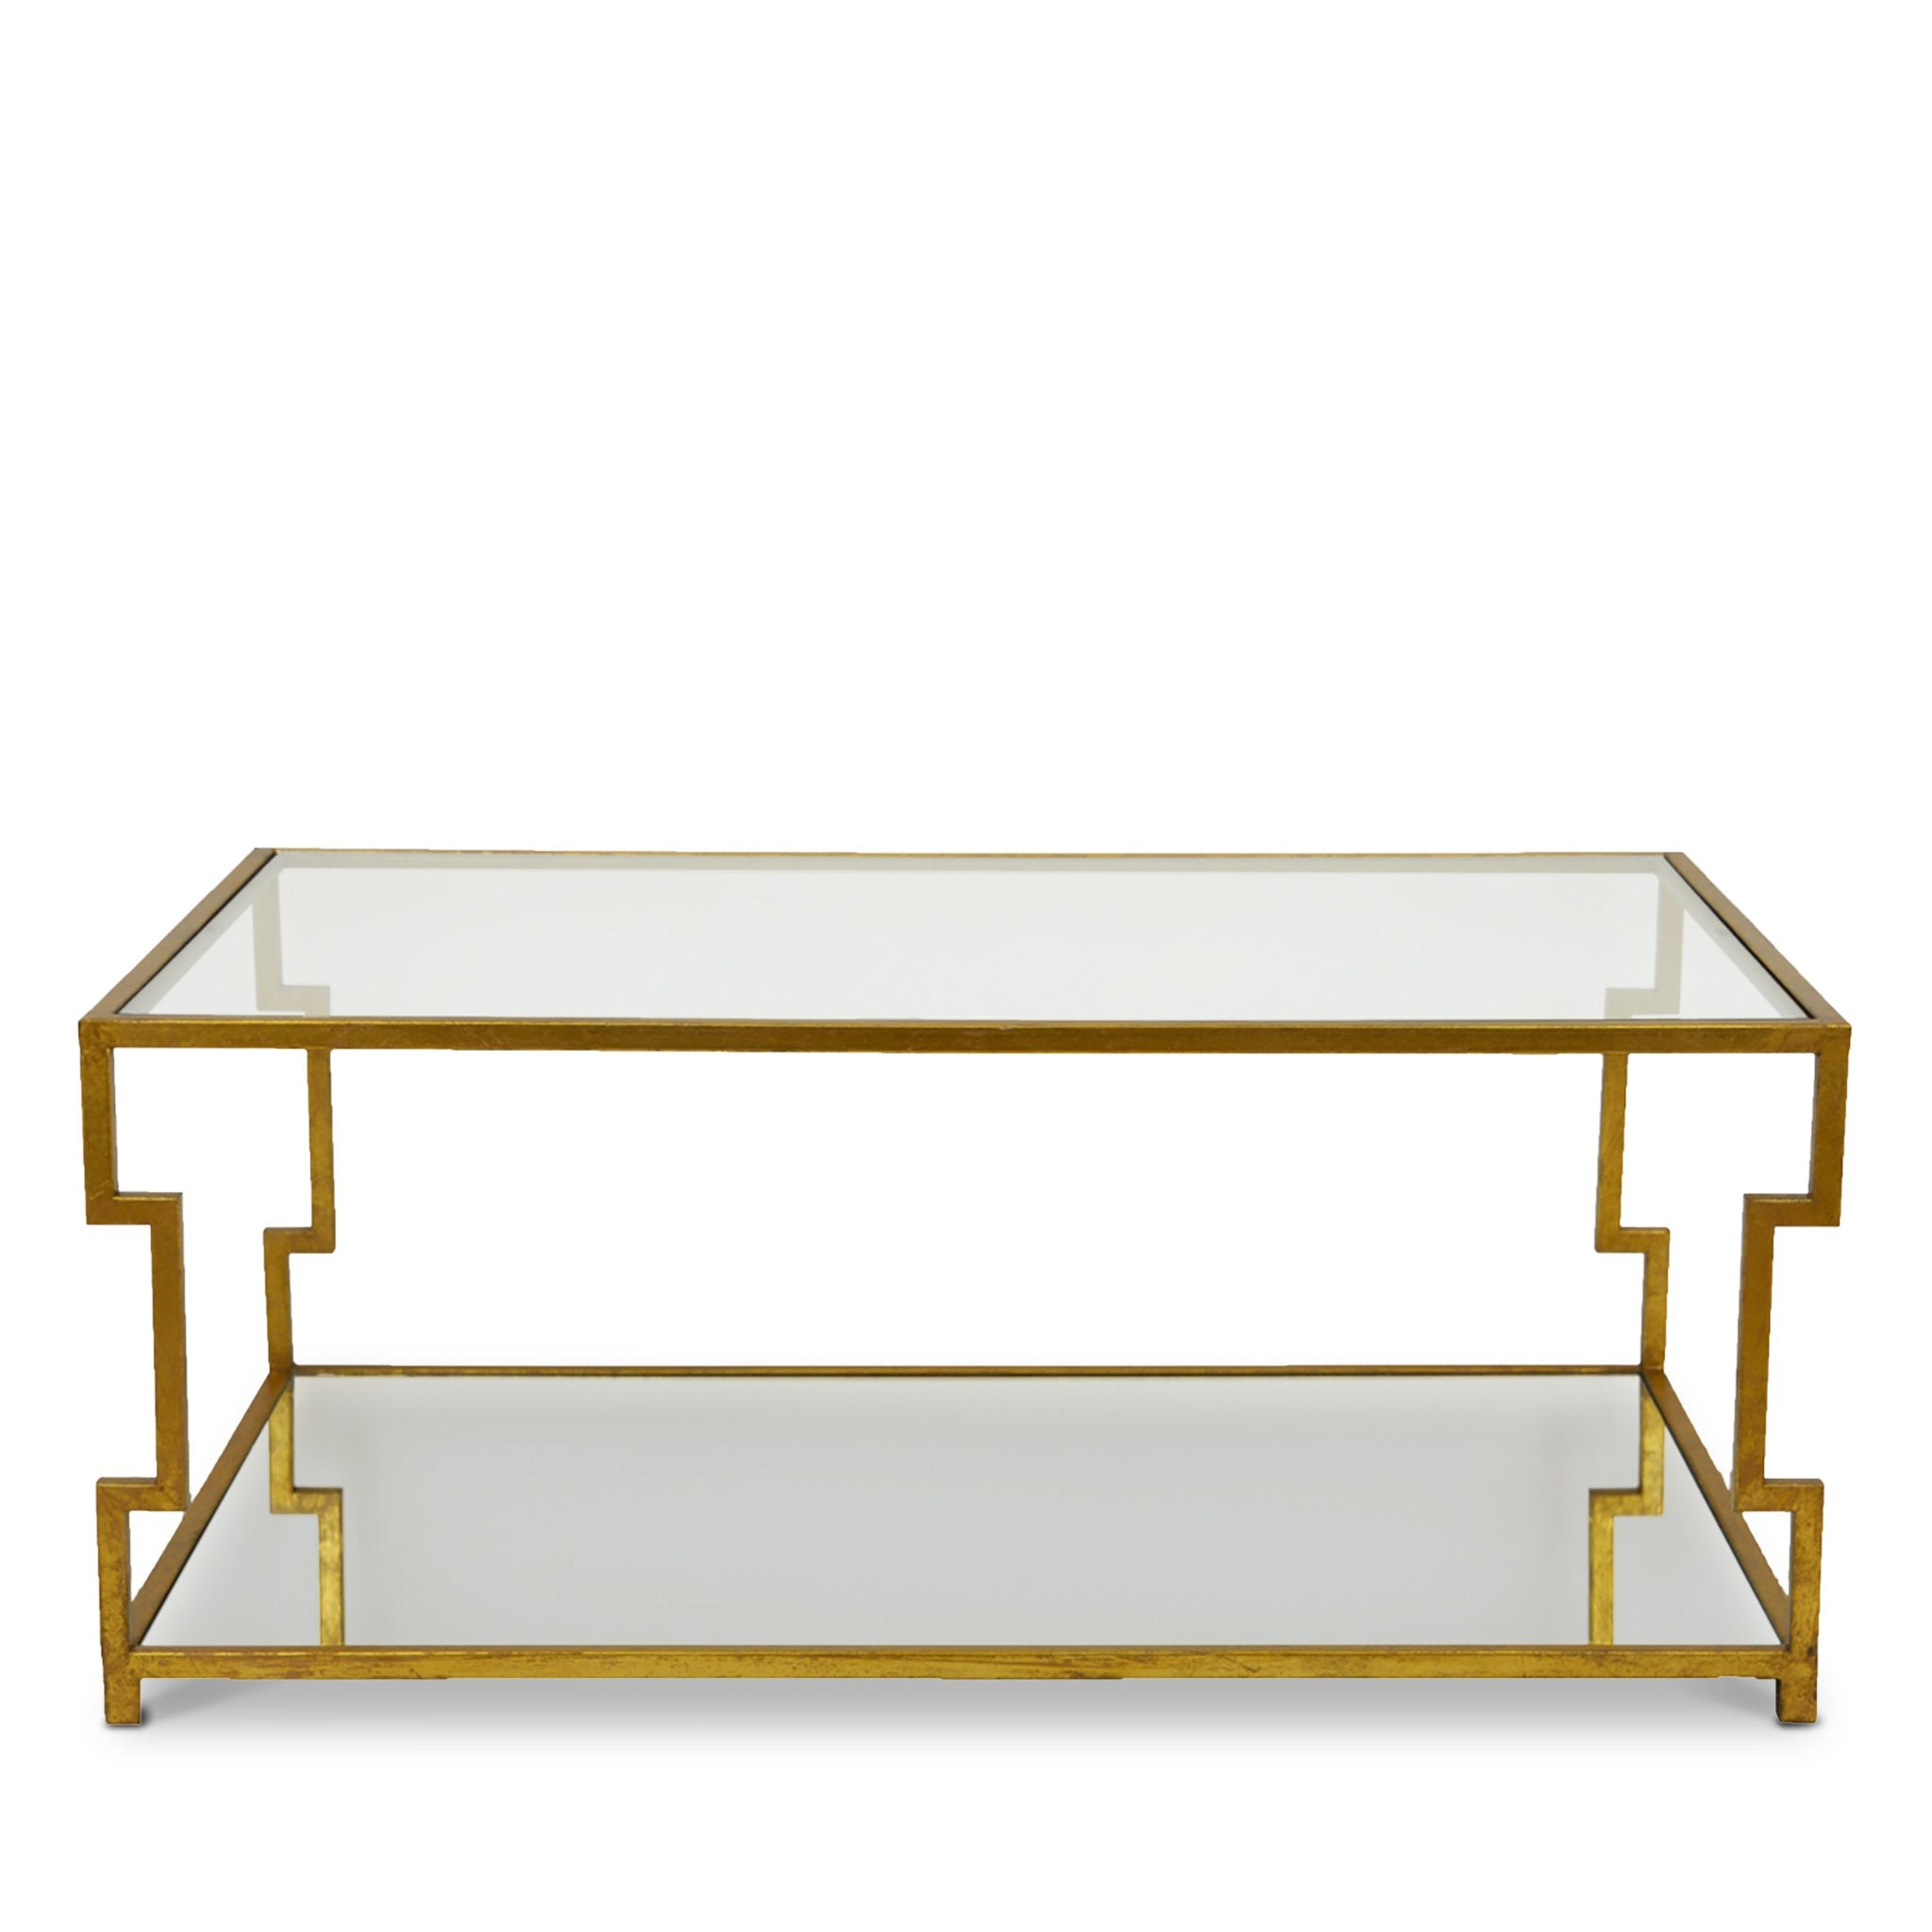 Diana Rectangle Coffee Table - Gold